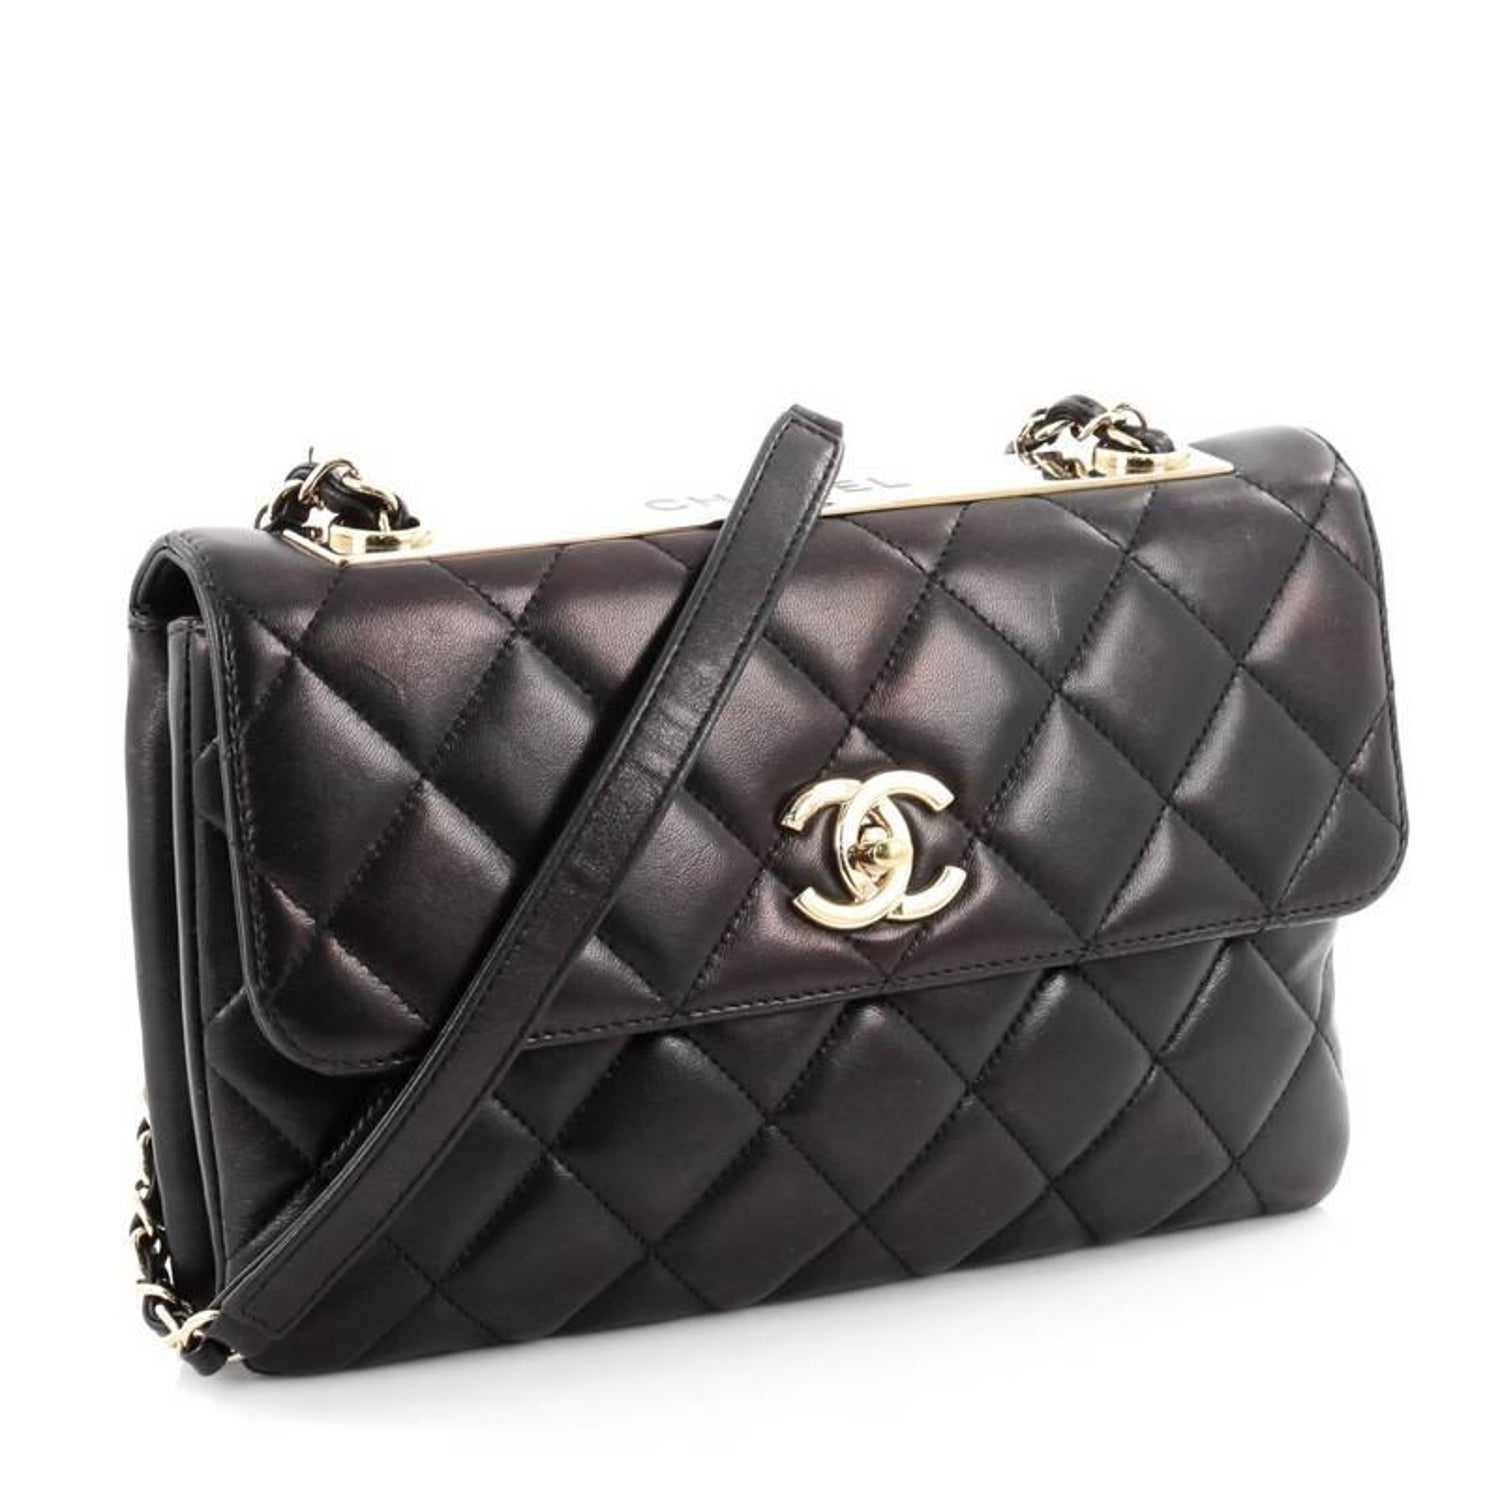 3b2f0a540b65 Chanel Trendy CC Flap Bag Quilted Lambskin Medium at 1stdibs